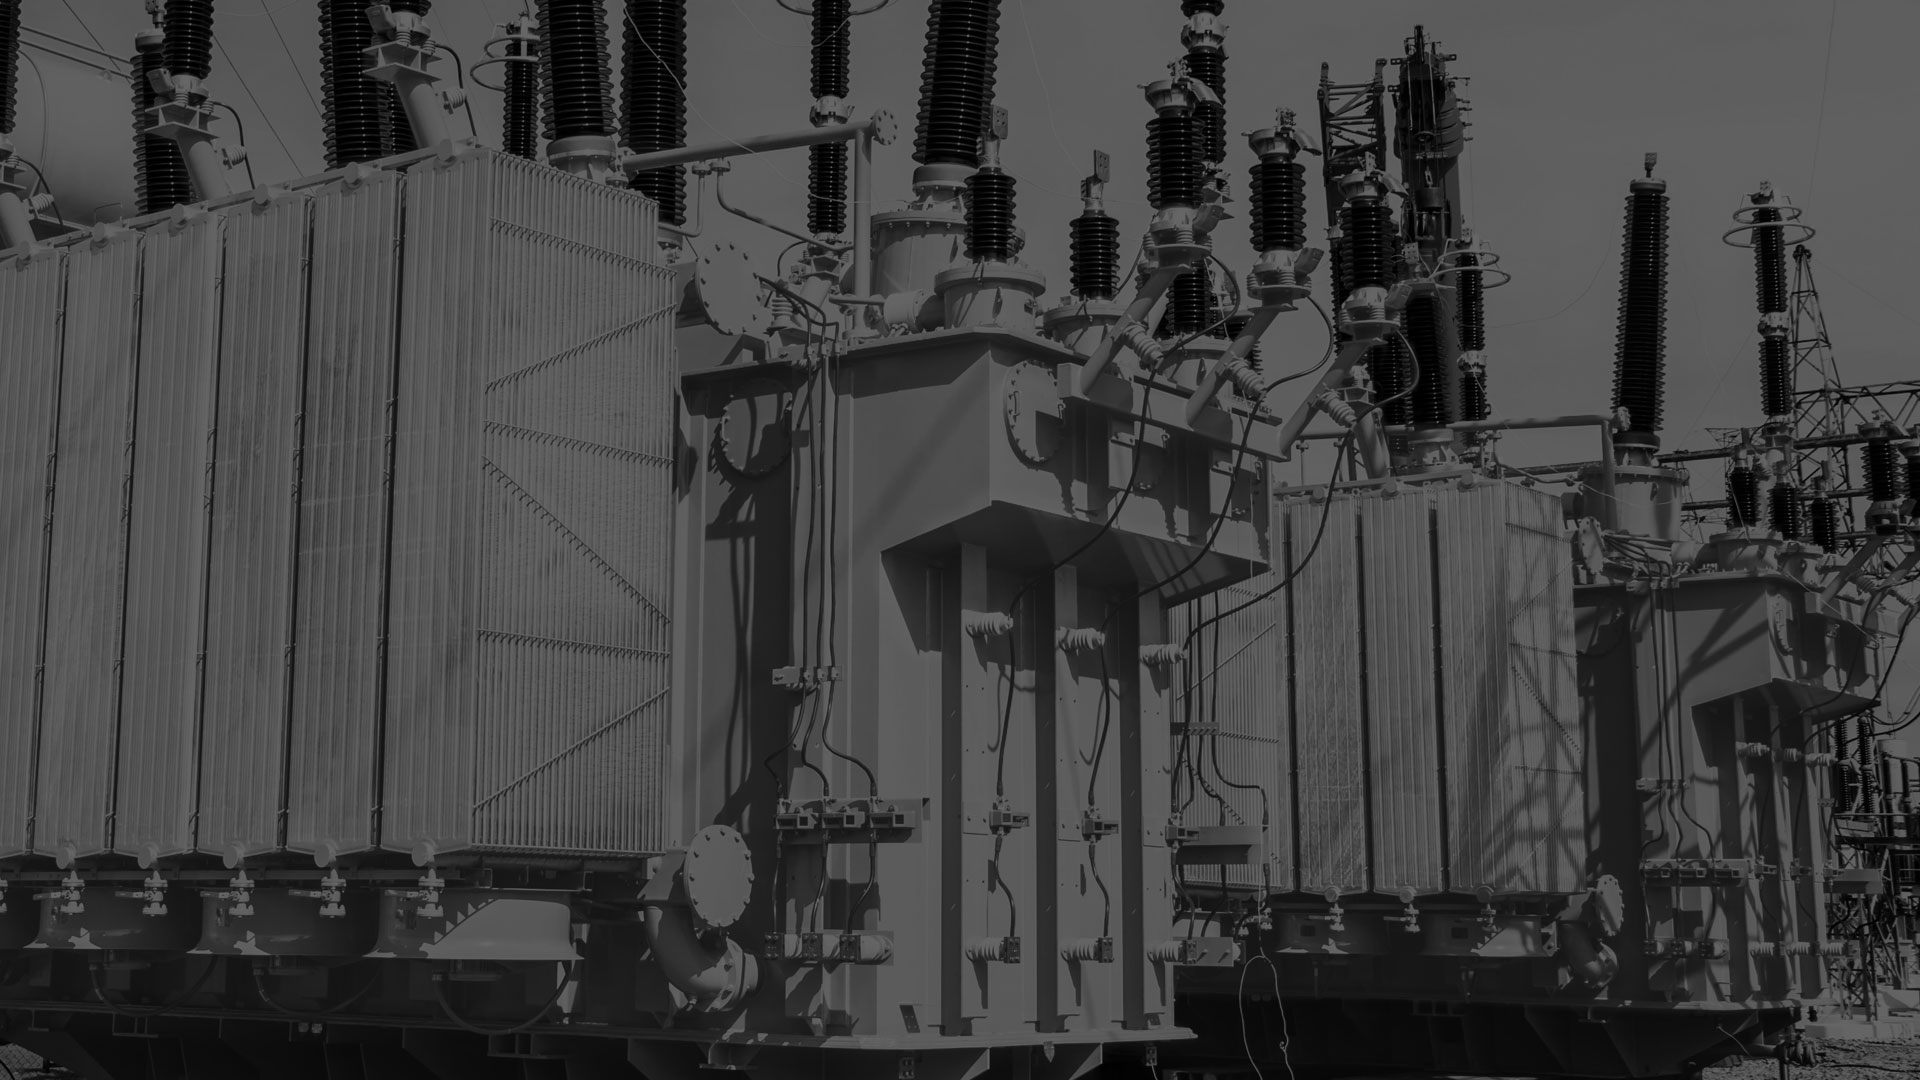 A darkened black and white image of a electrical transformer.